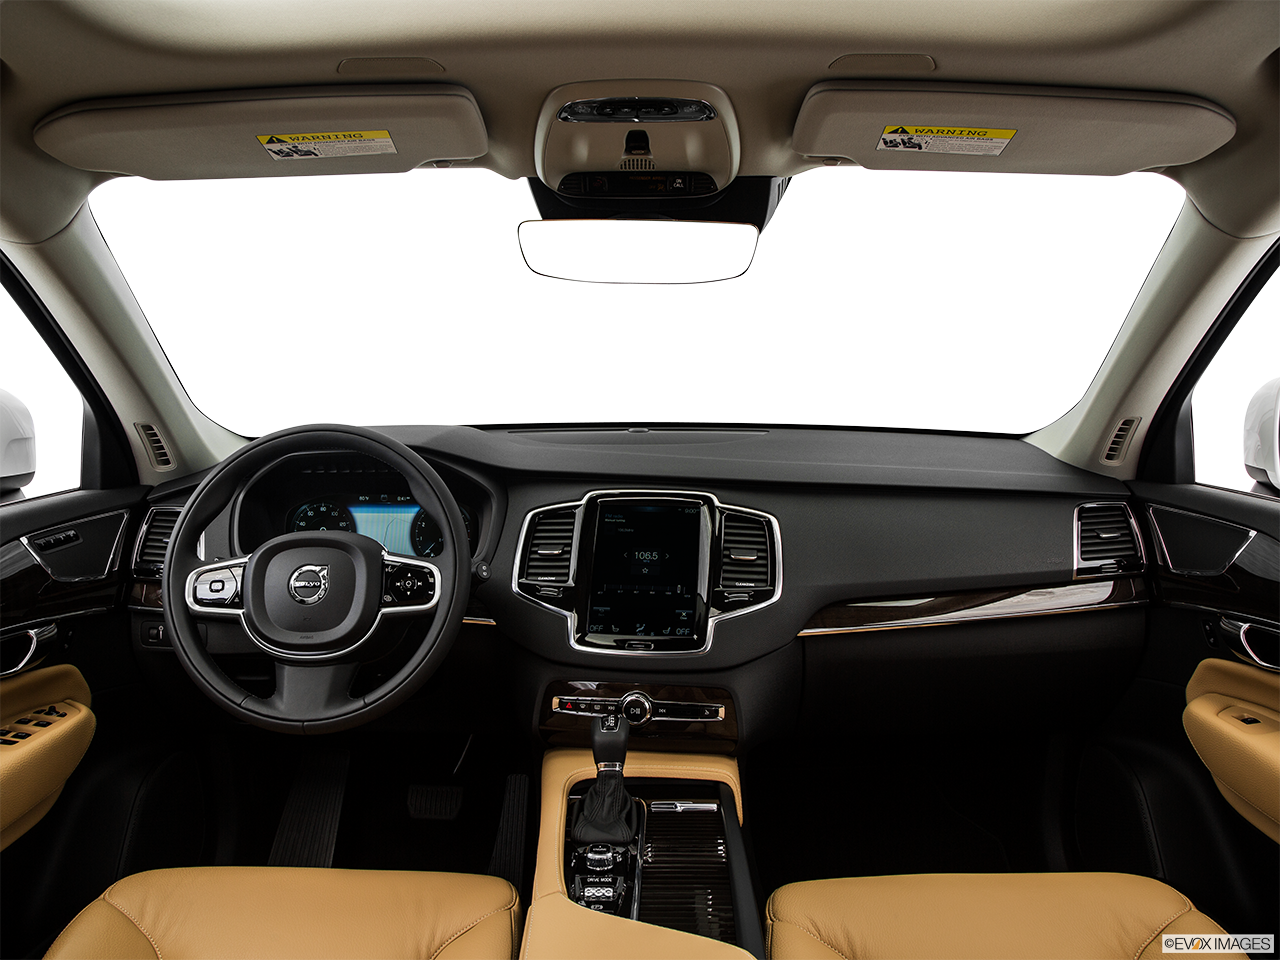 Interior View Of 2016 Volvo XC90 in Los Angeles